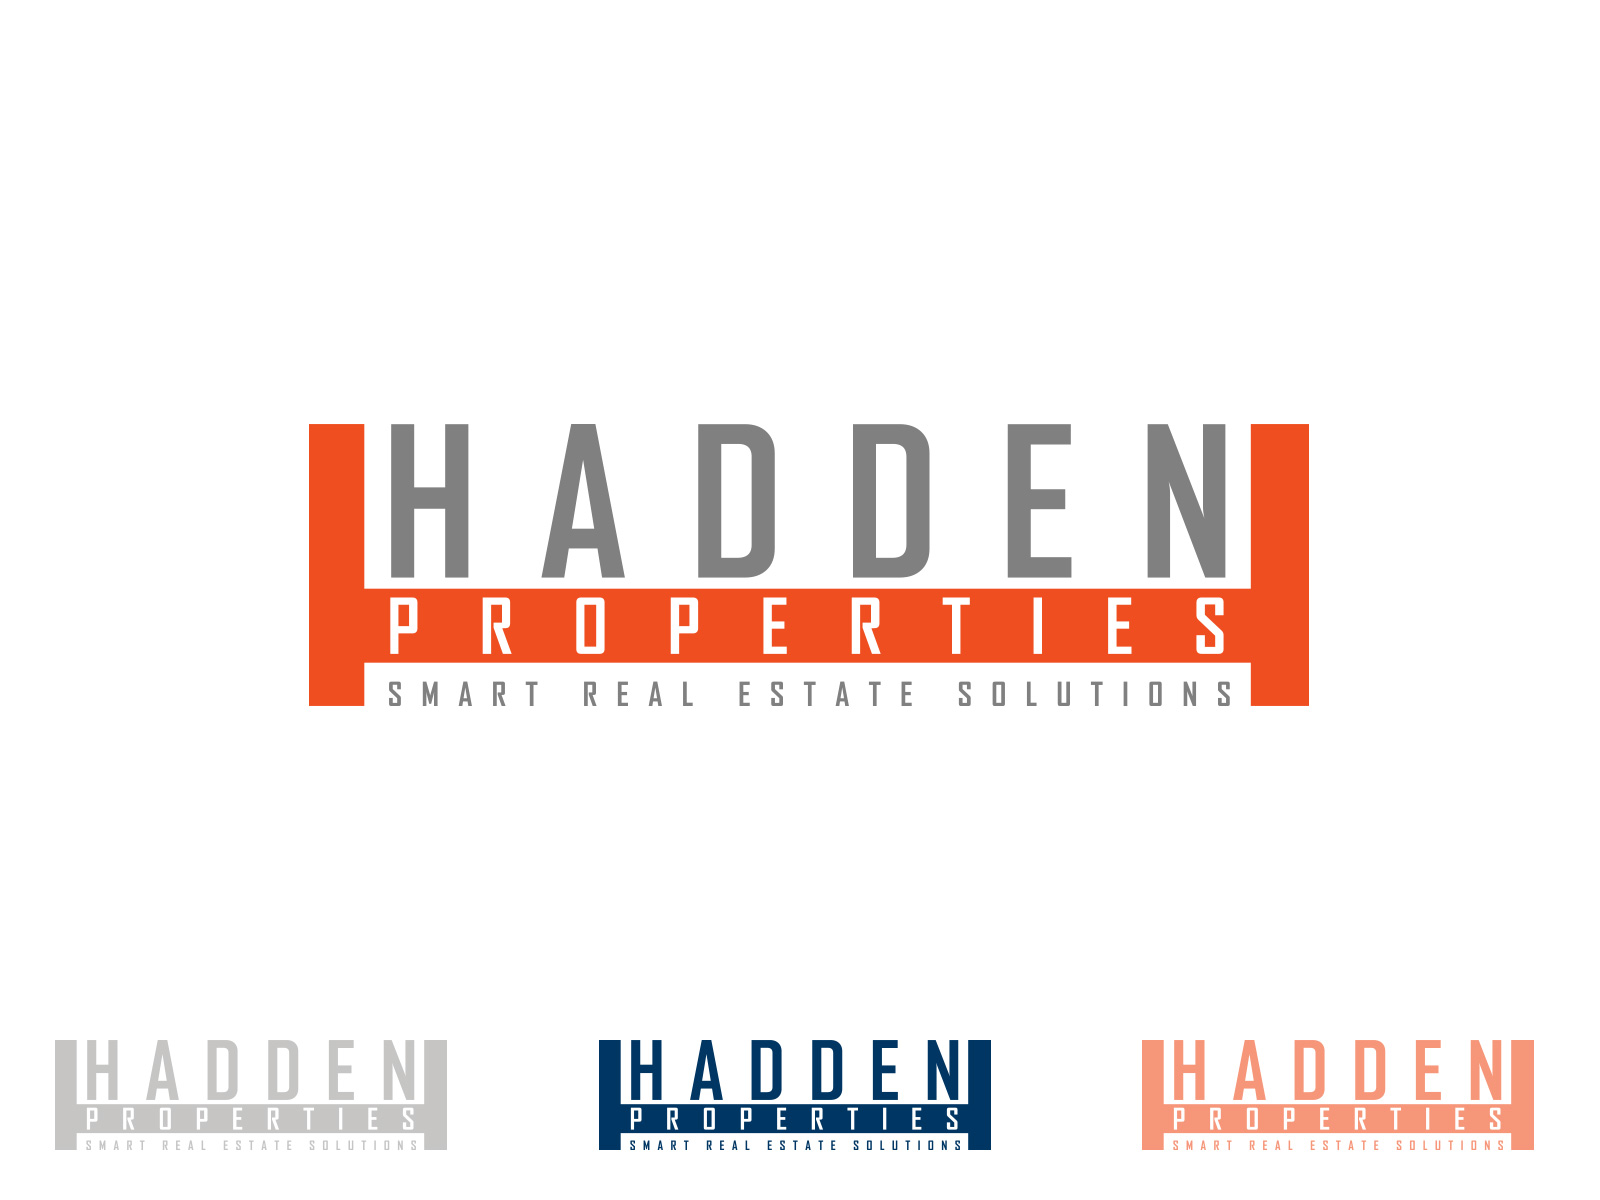 Logo Design by olii - Entry No. 156 in the Logo Design Contest Artistic Logo Design for Hadden Properties.